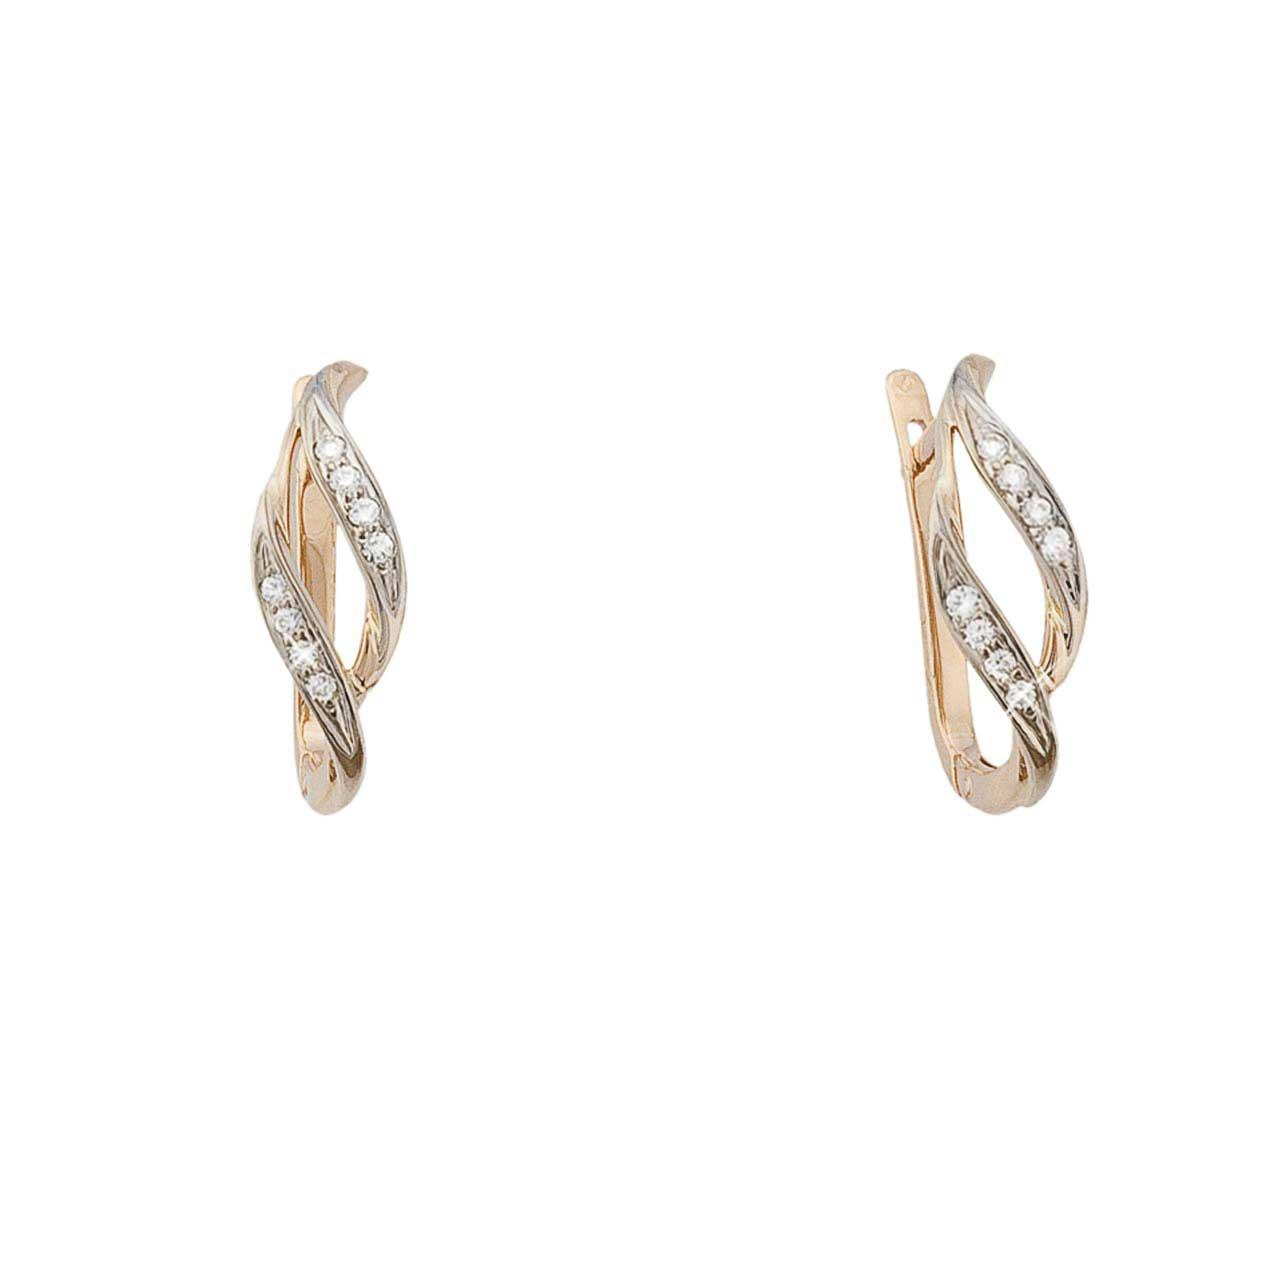 Elegant earrings with diamonds